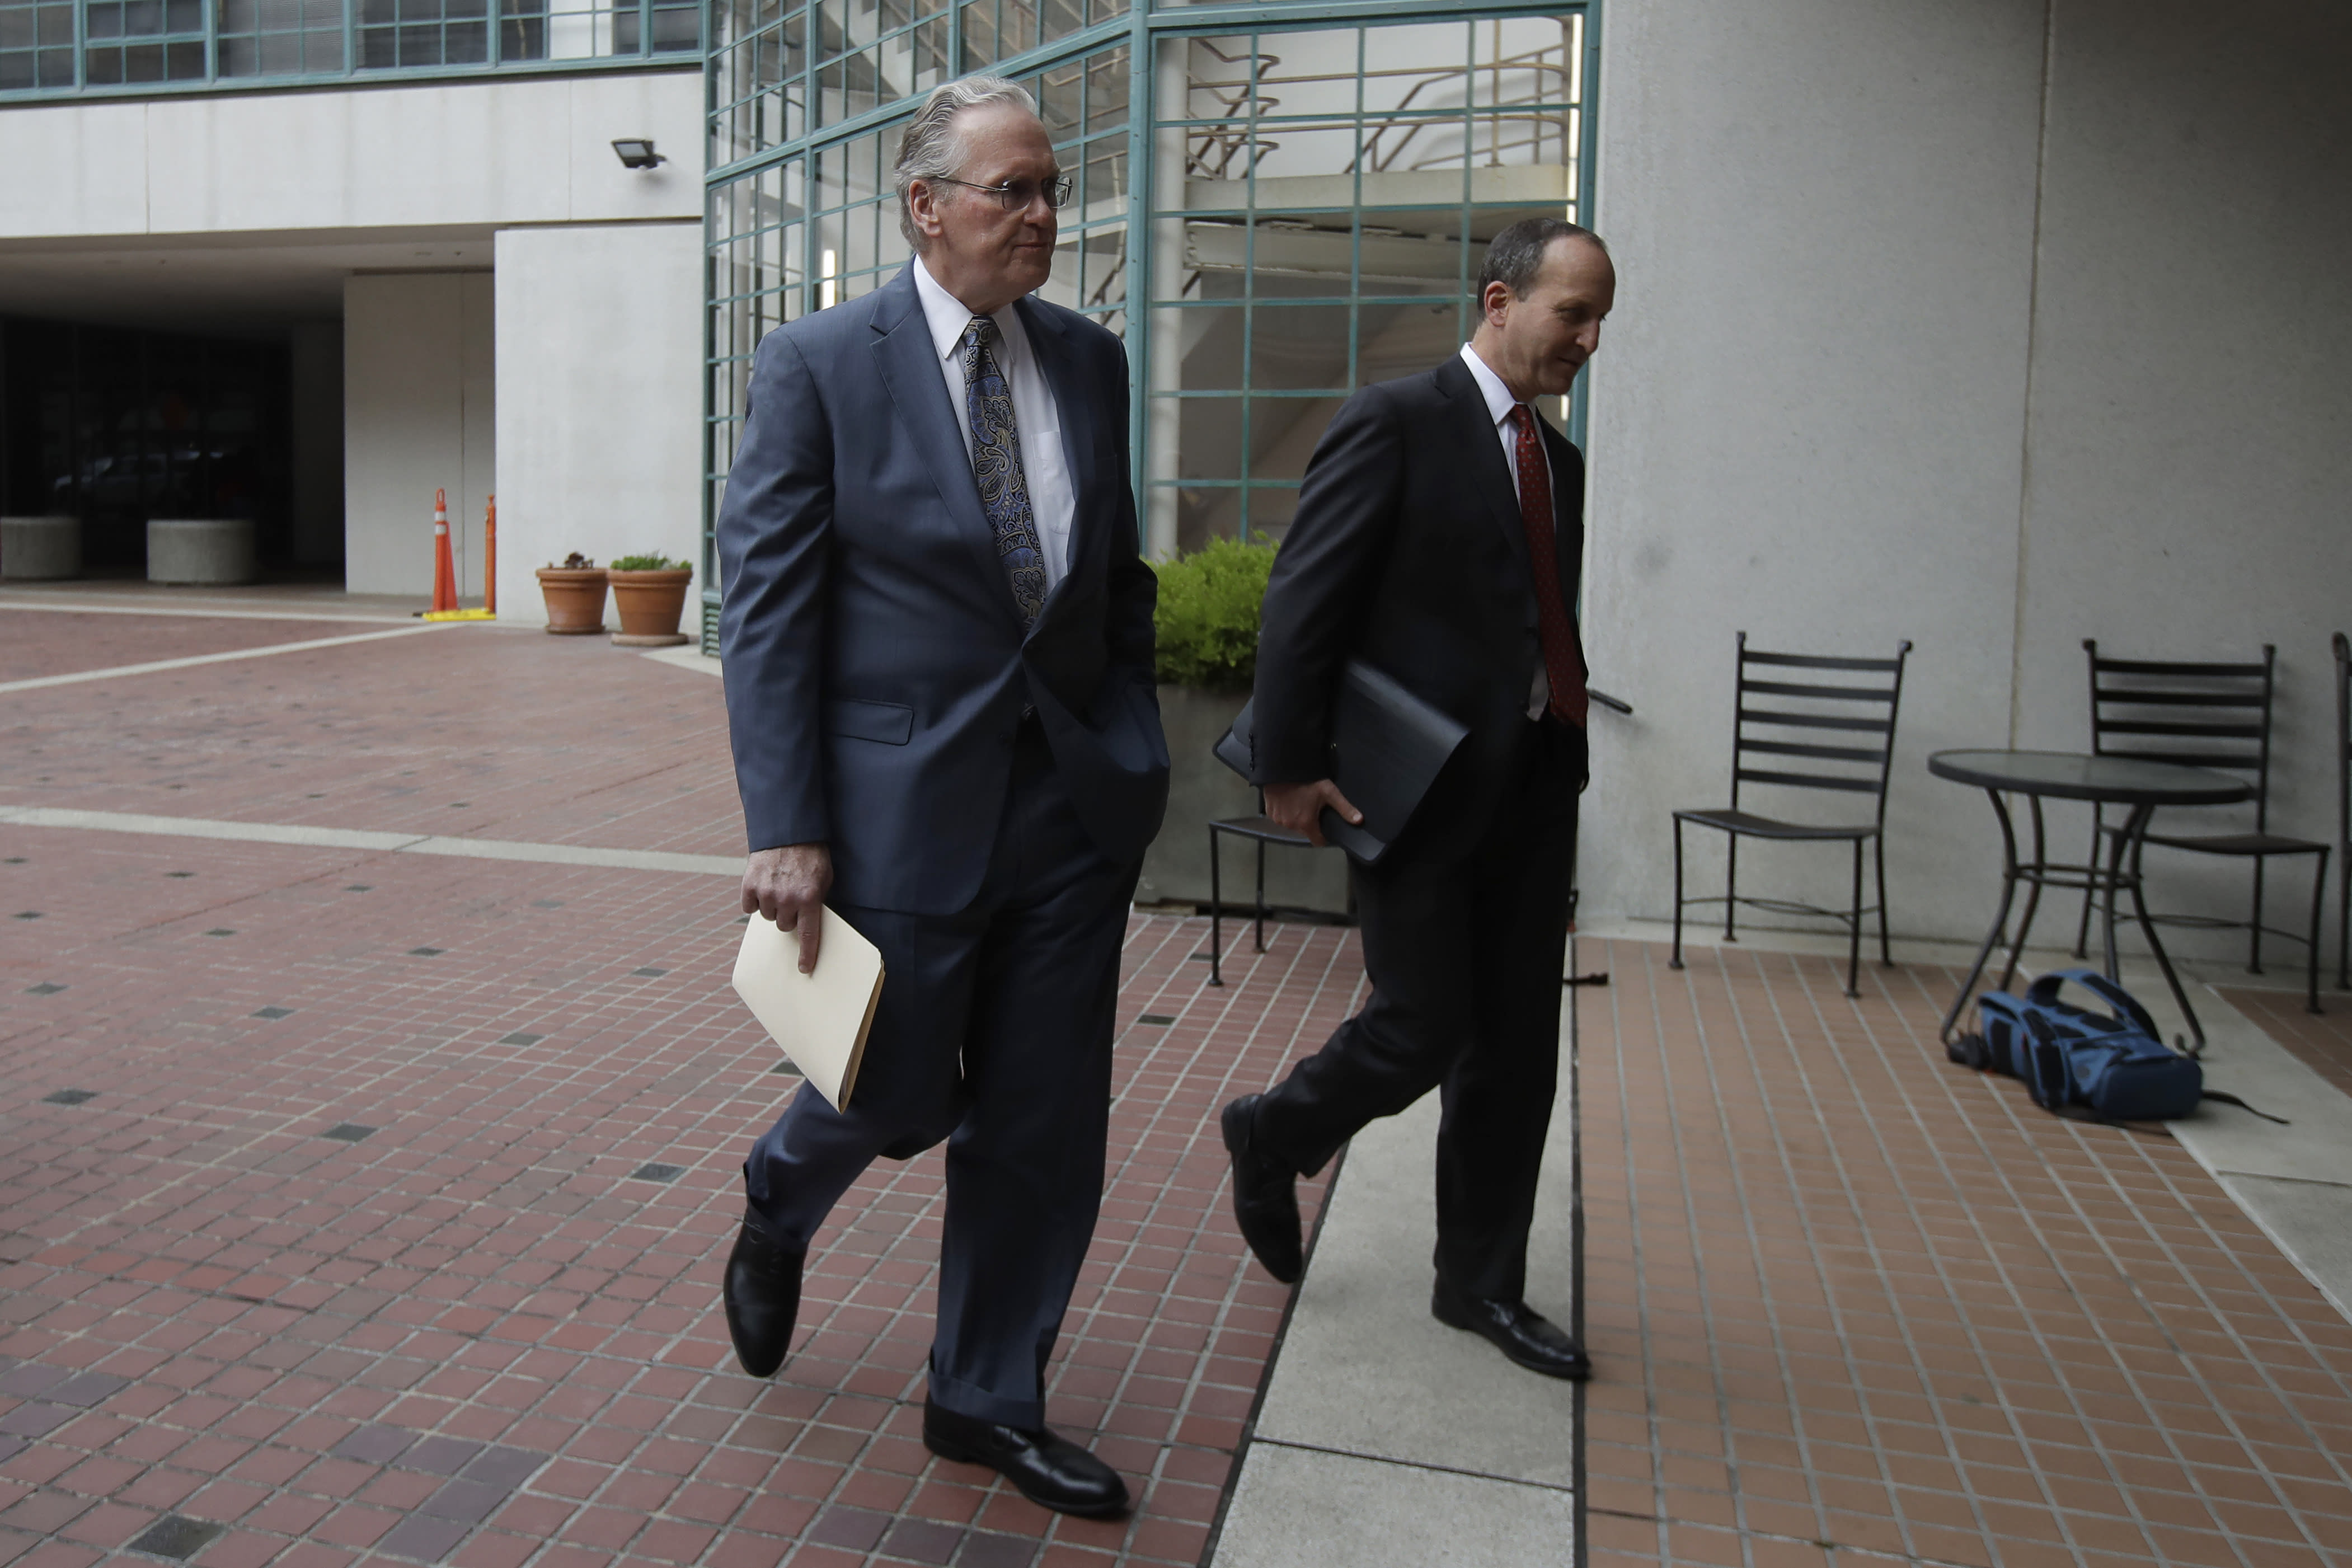 Pacific Gas and Electric Company (PG&E) CEO Bill Johnson, left, walks toward the California Public Utilities Commission headquarters before a meeting in San Francisco, Friday, Oct. 18, 2019. (AP Photo/Jeff Chiu)